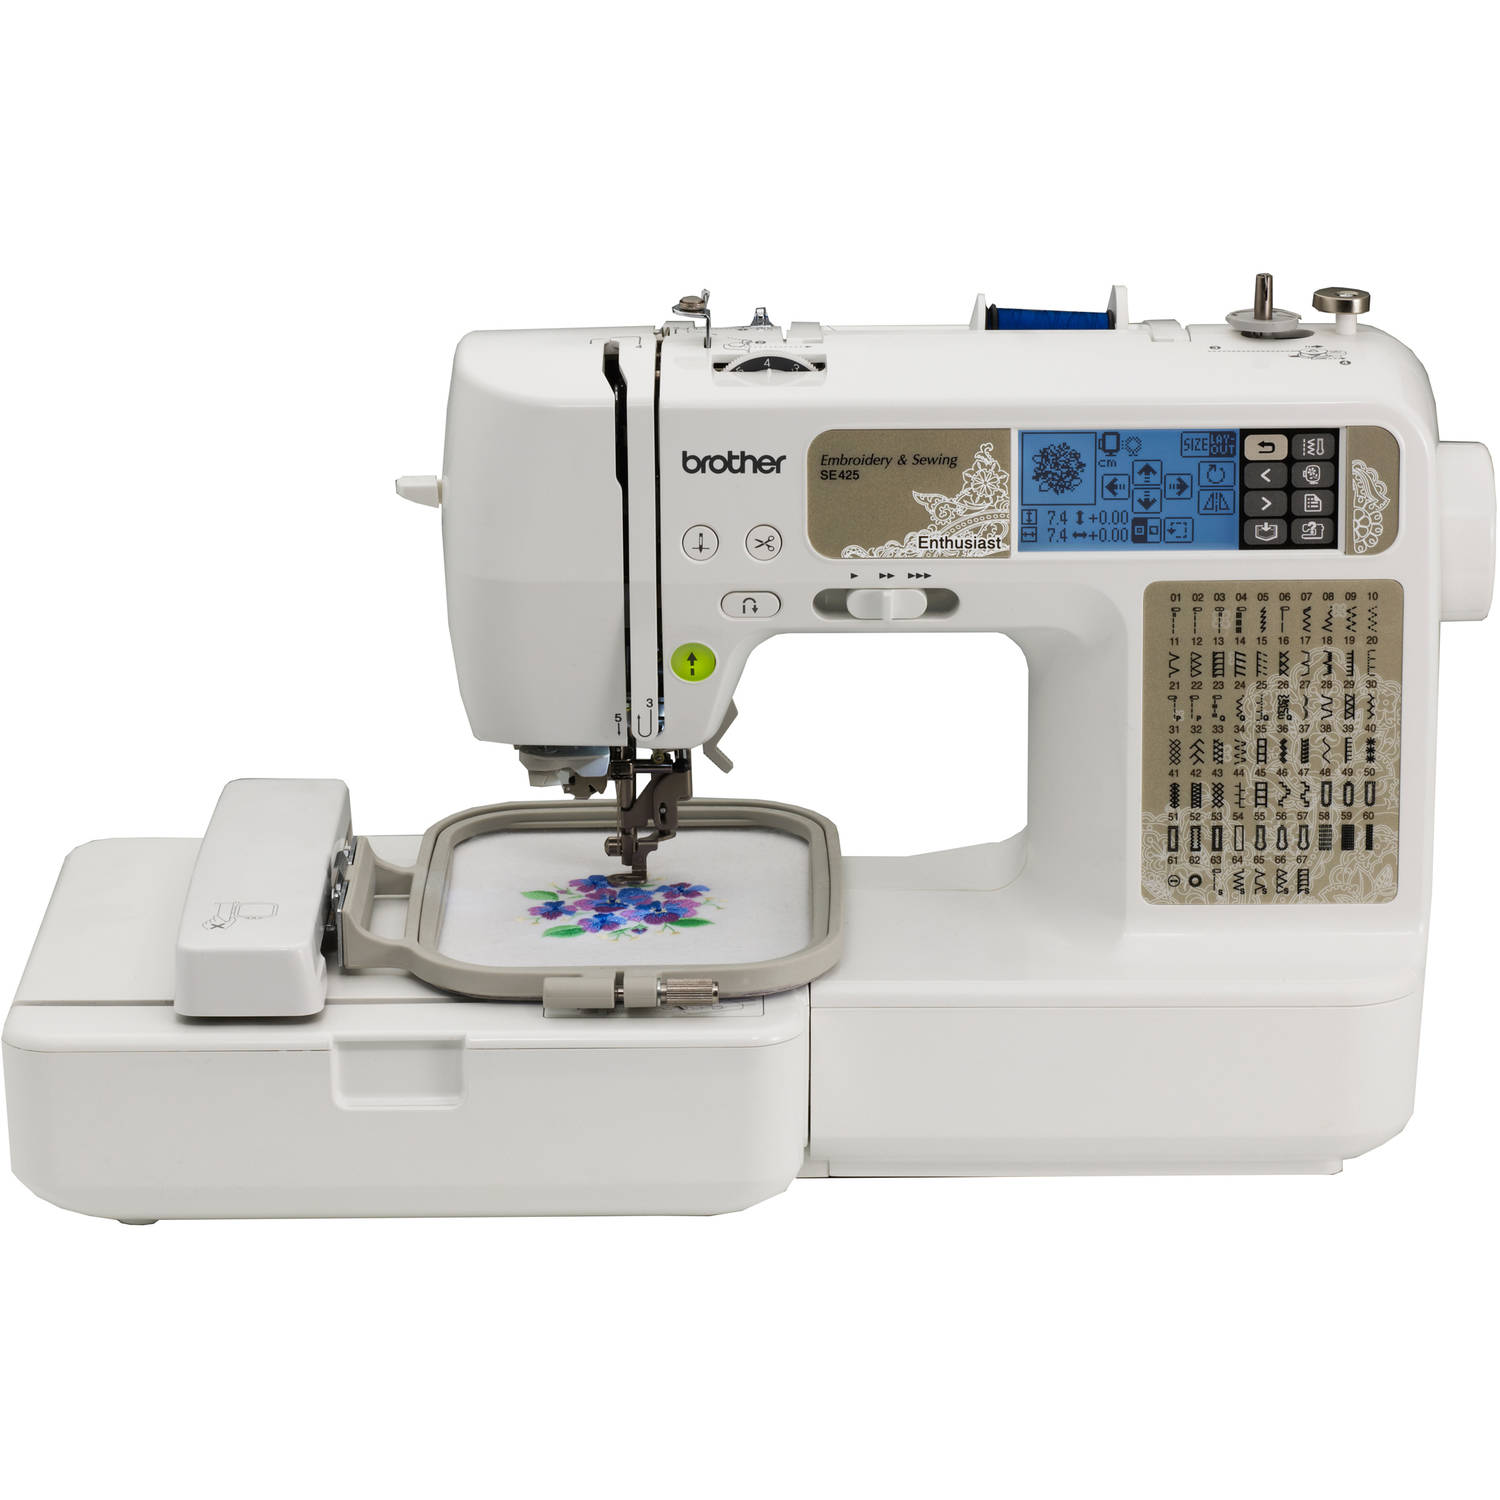 Brother Sewing and Embroidery Machine, SE425